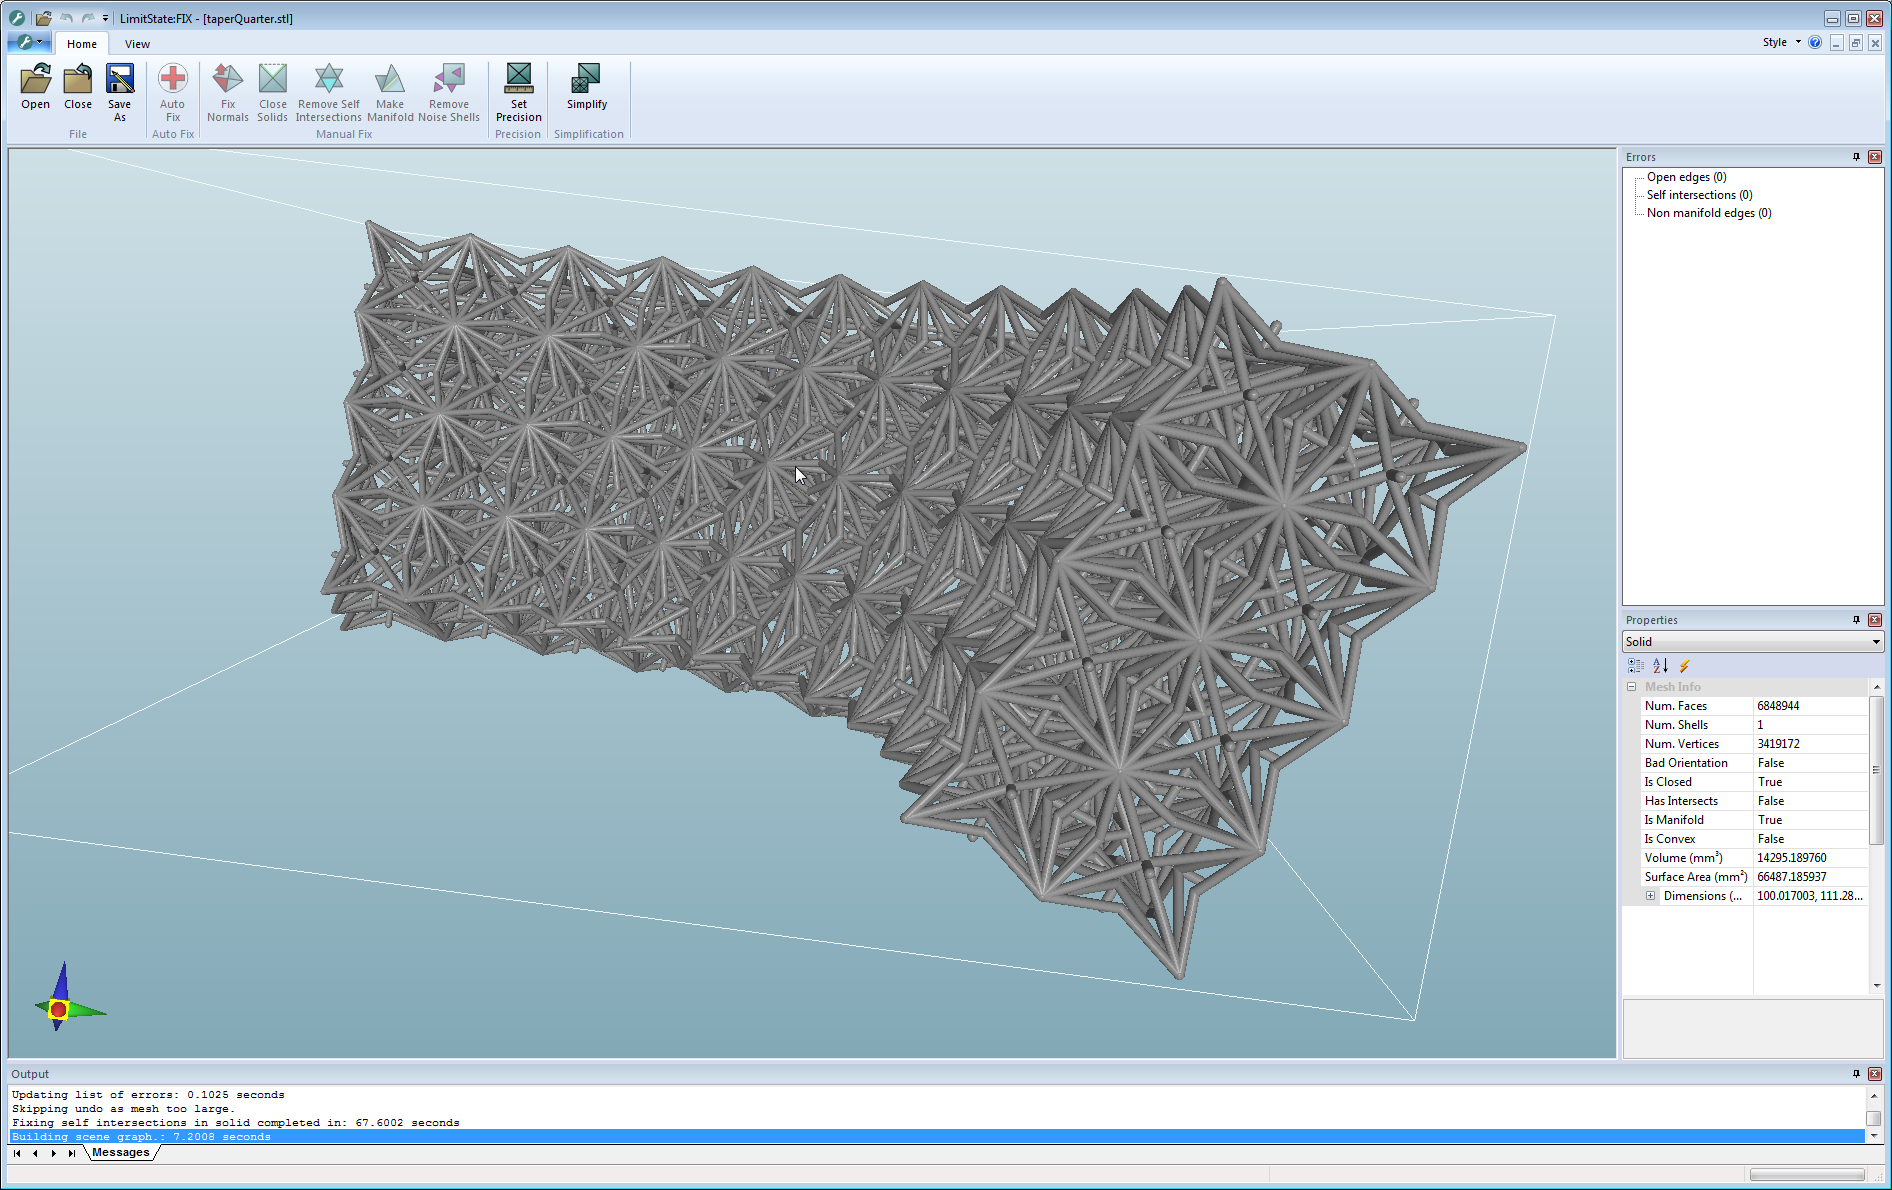 3D STL model of complex aerospace lattice using auextic materials